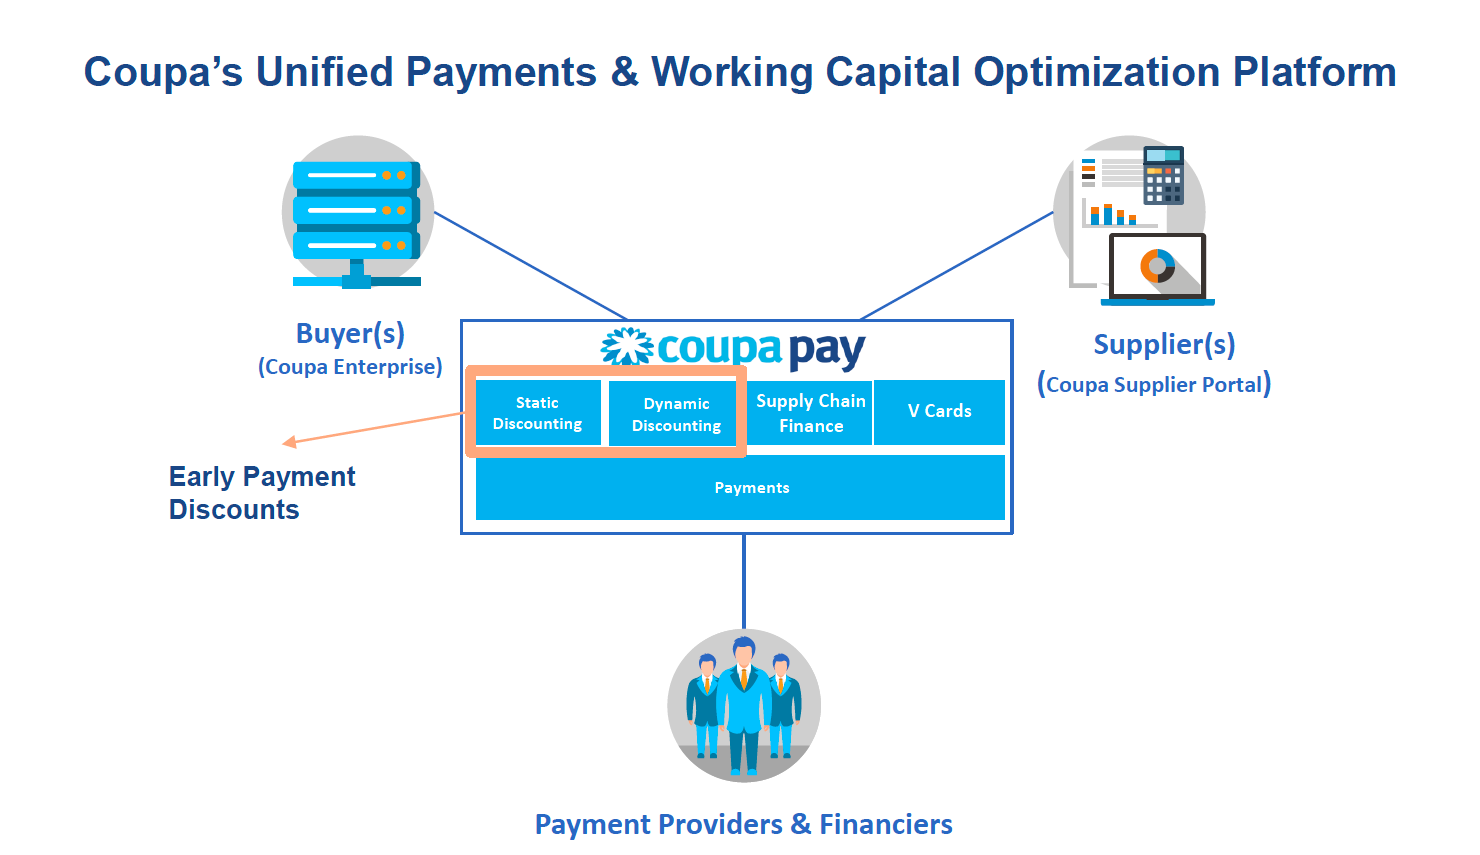 Coupa's Unified Payments & Working Capital Optimization Platform